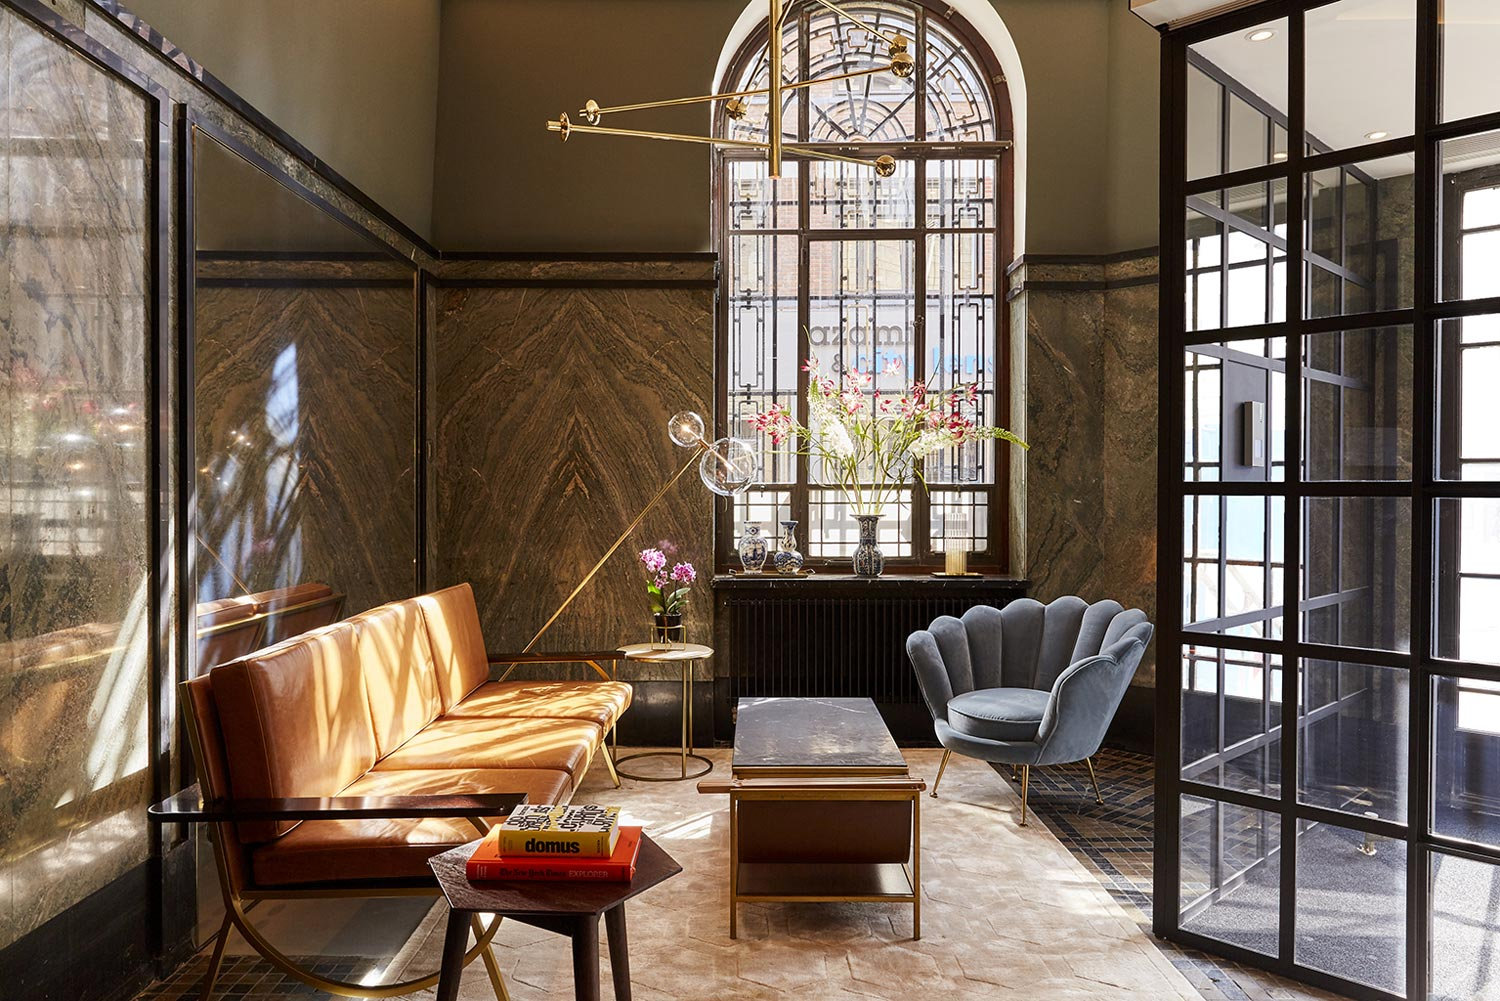 Project Of The Week – Hotel Indigo, The Hague